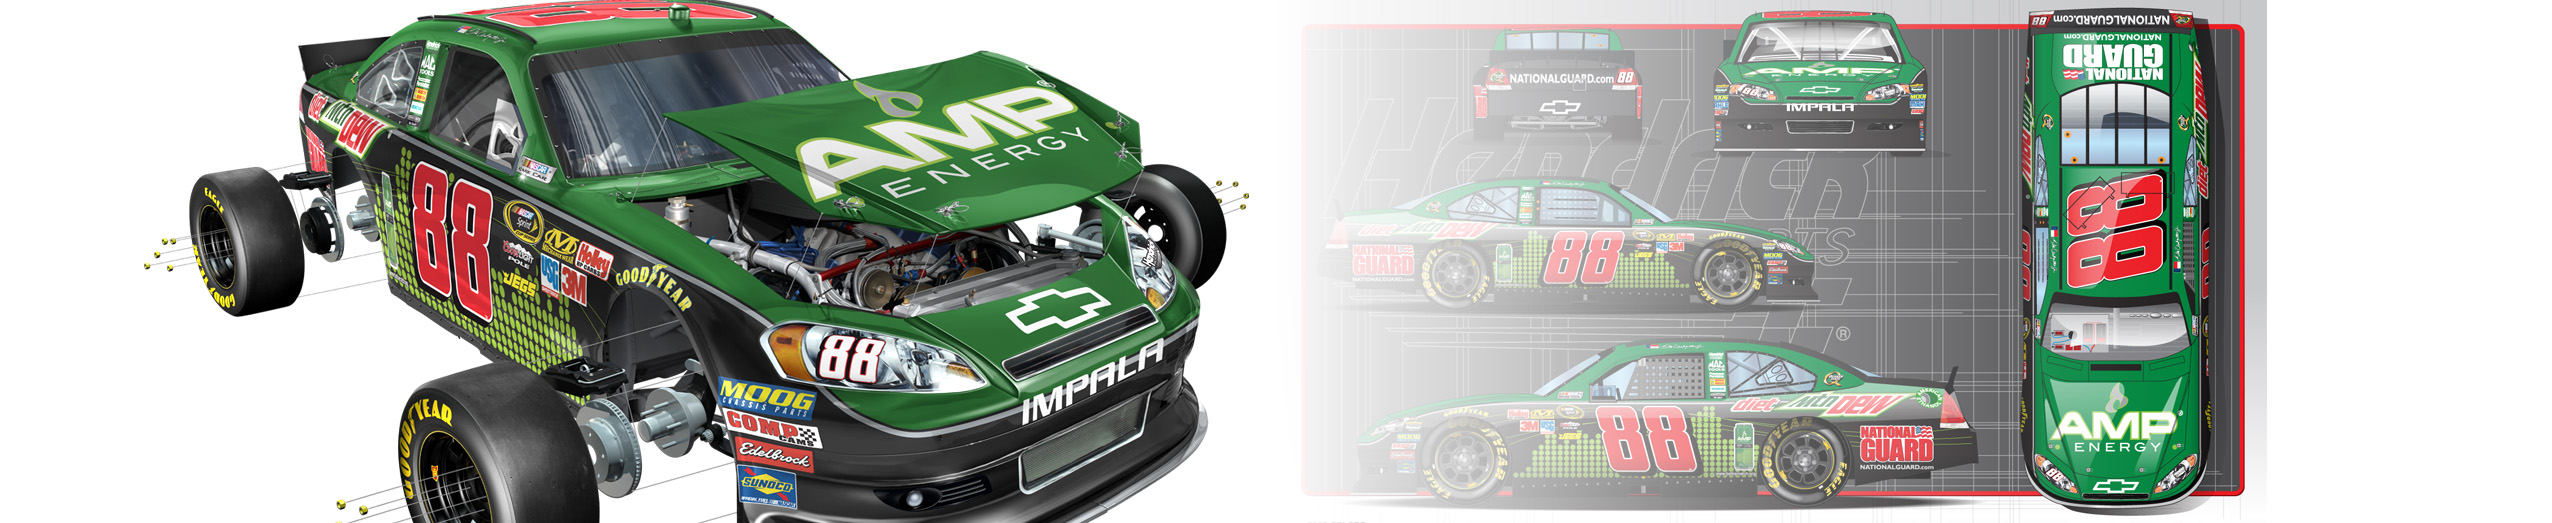 Mountain Dew AMP Car